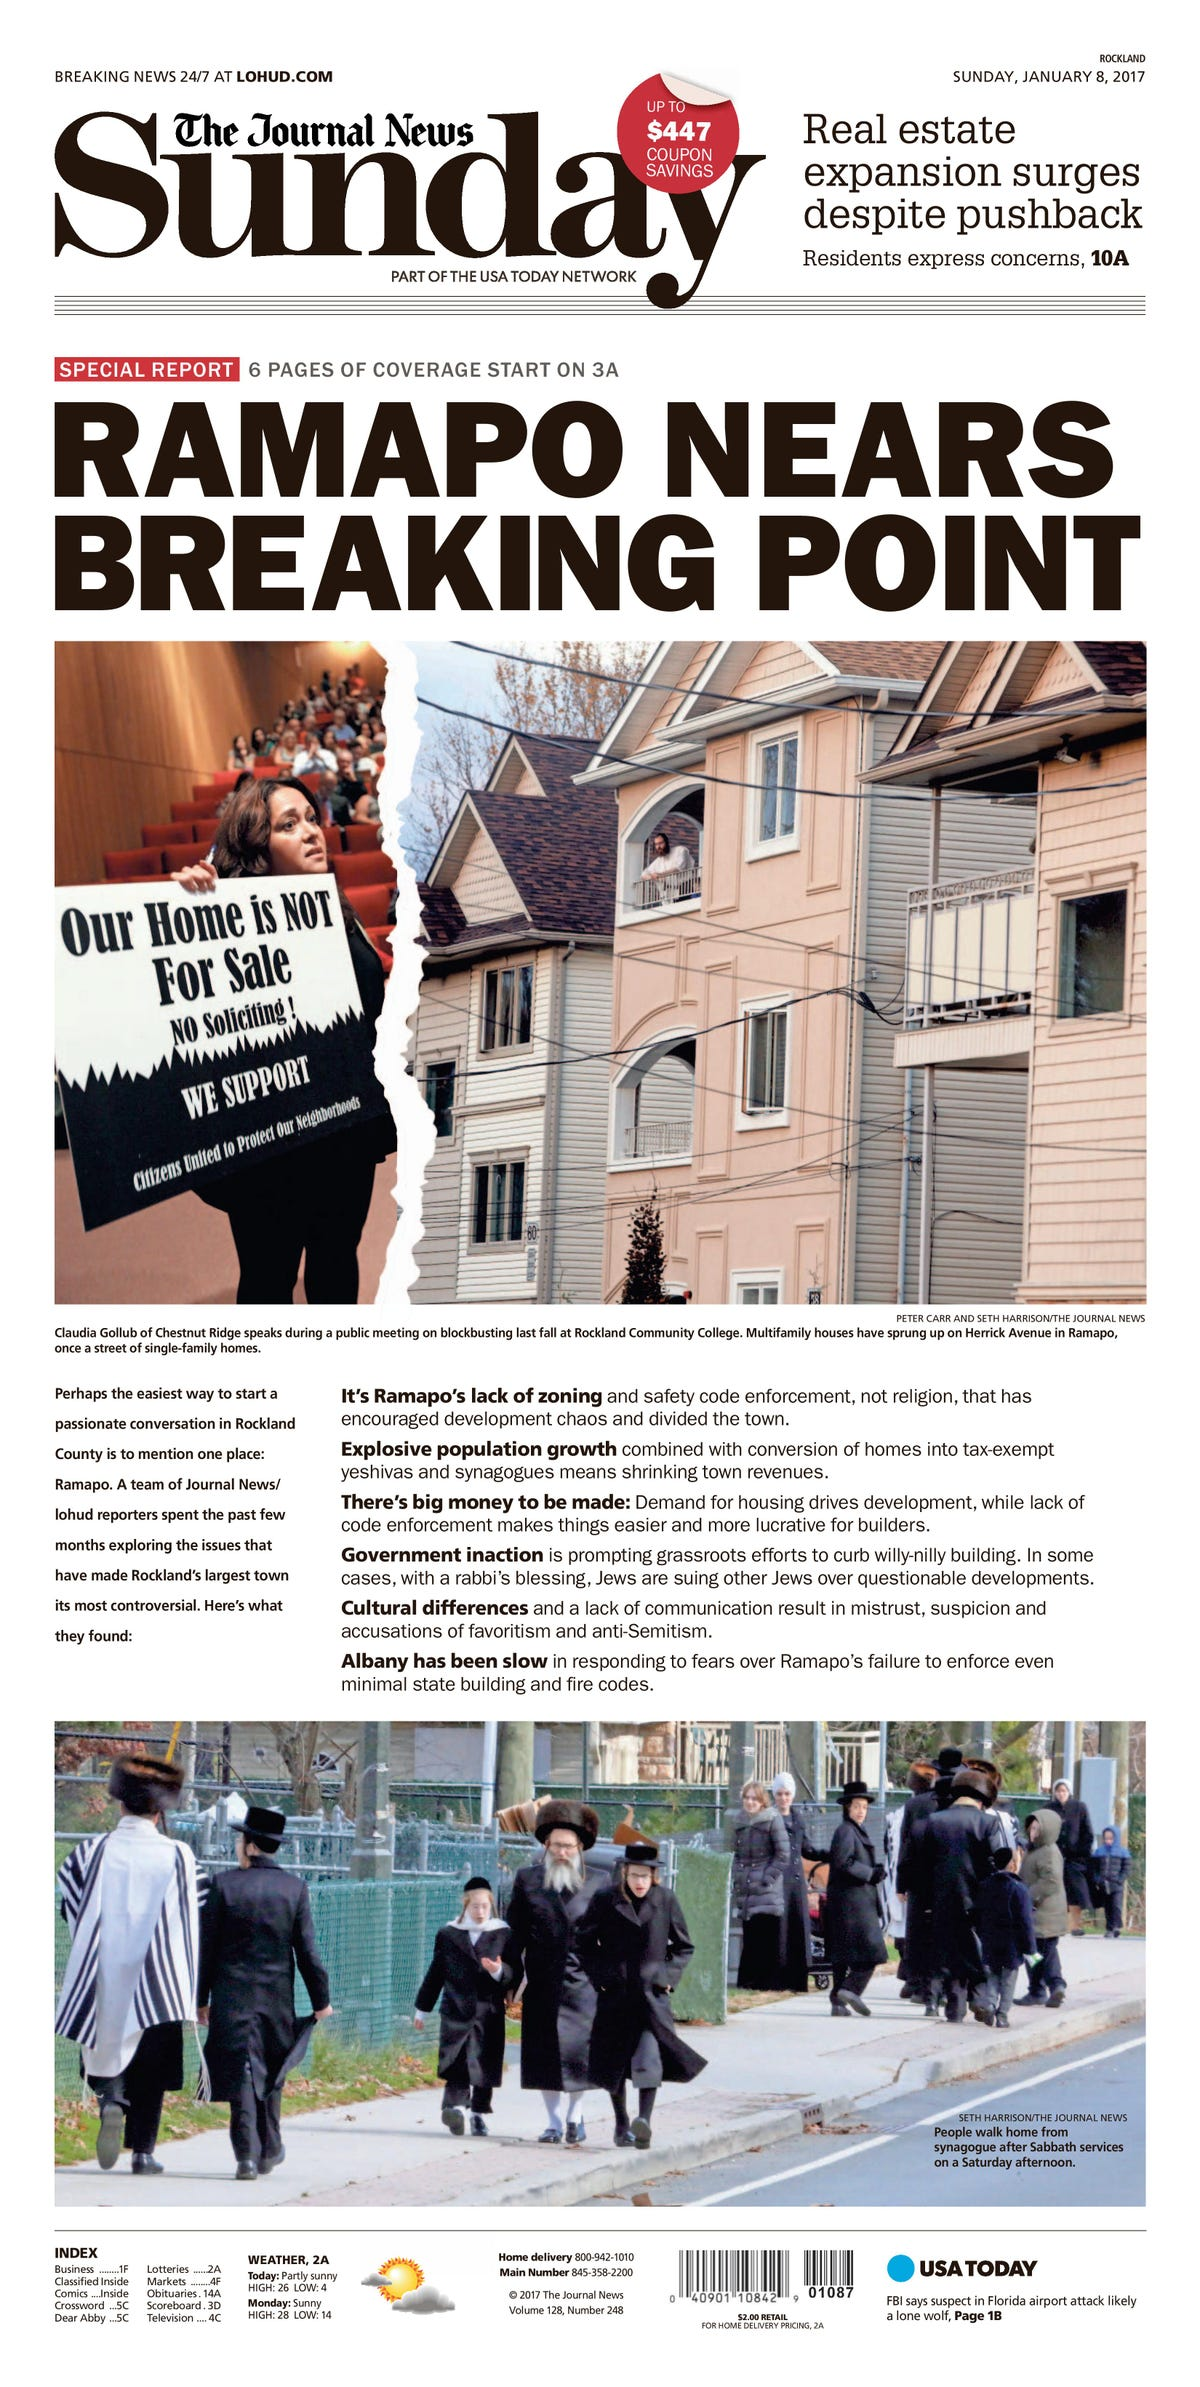 Ramapo nears breaking point: Special Report